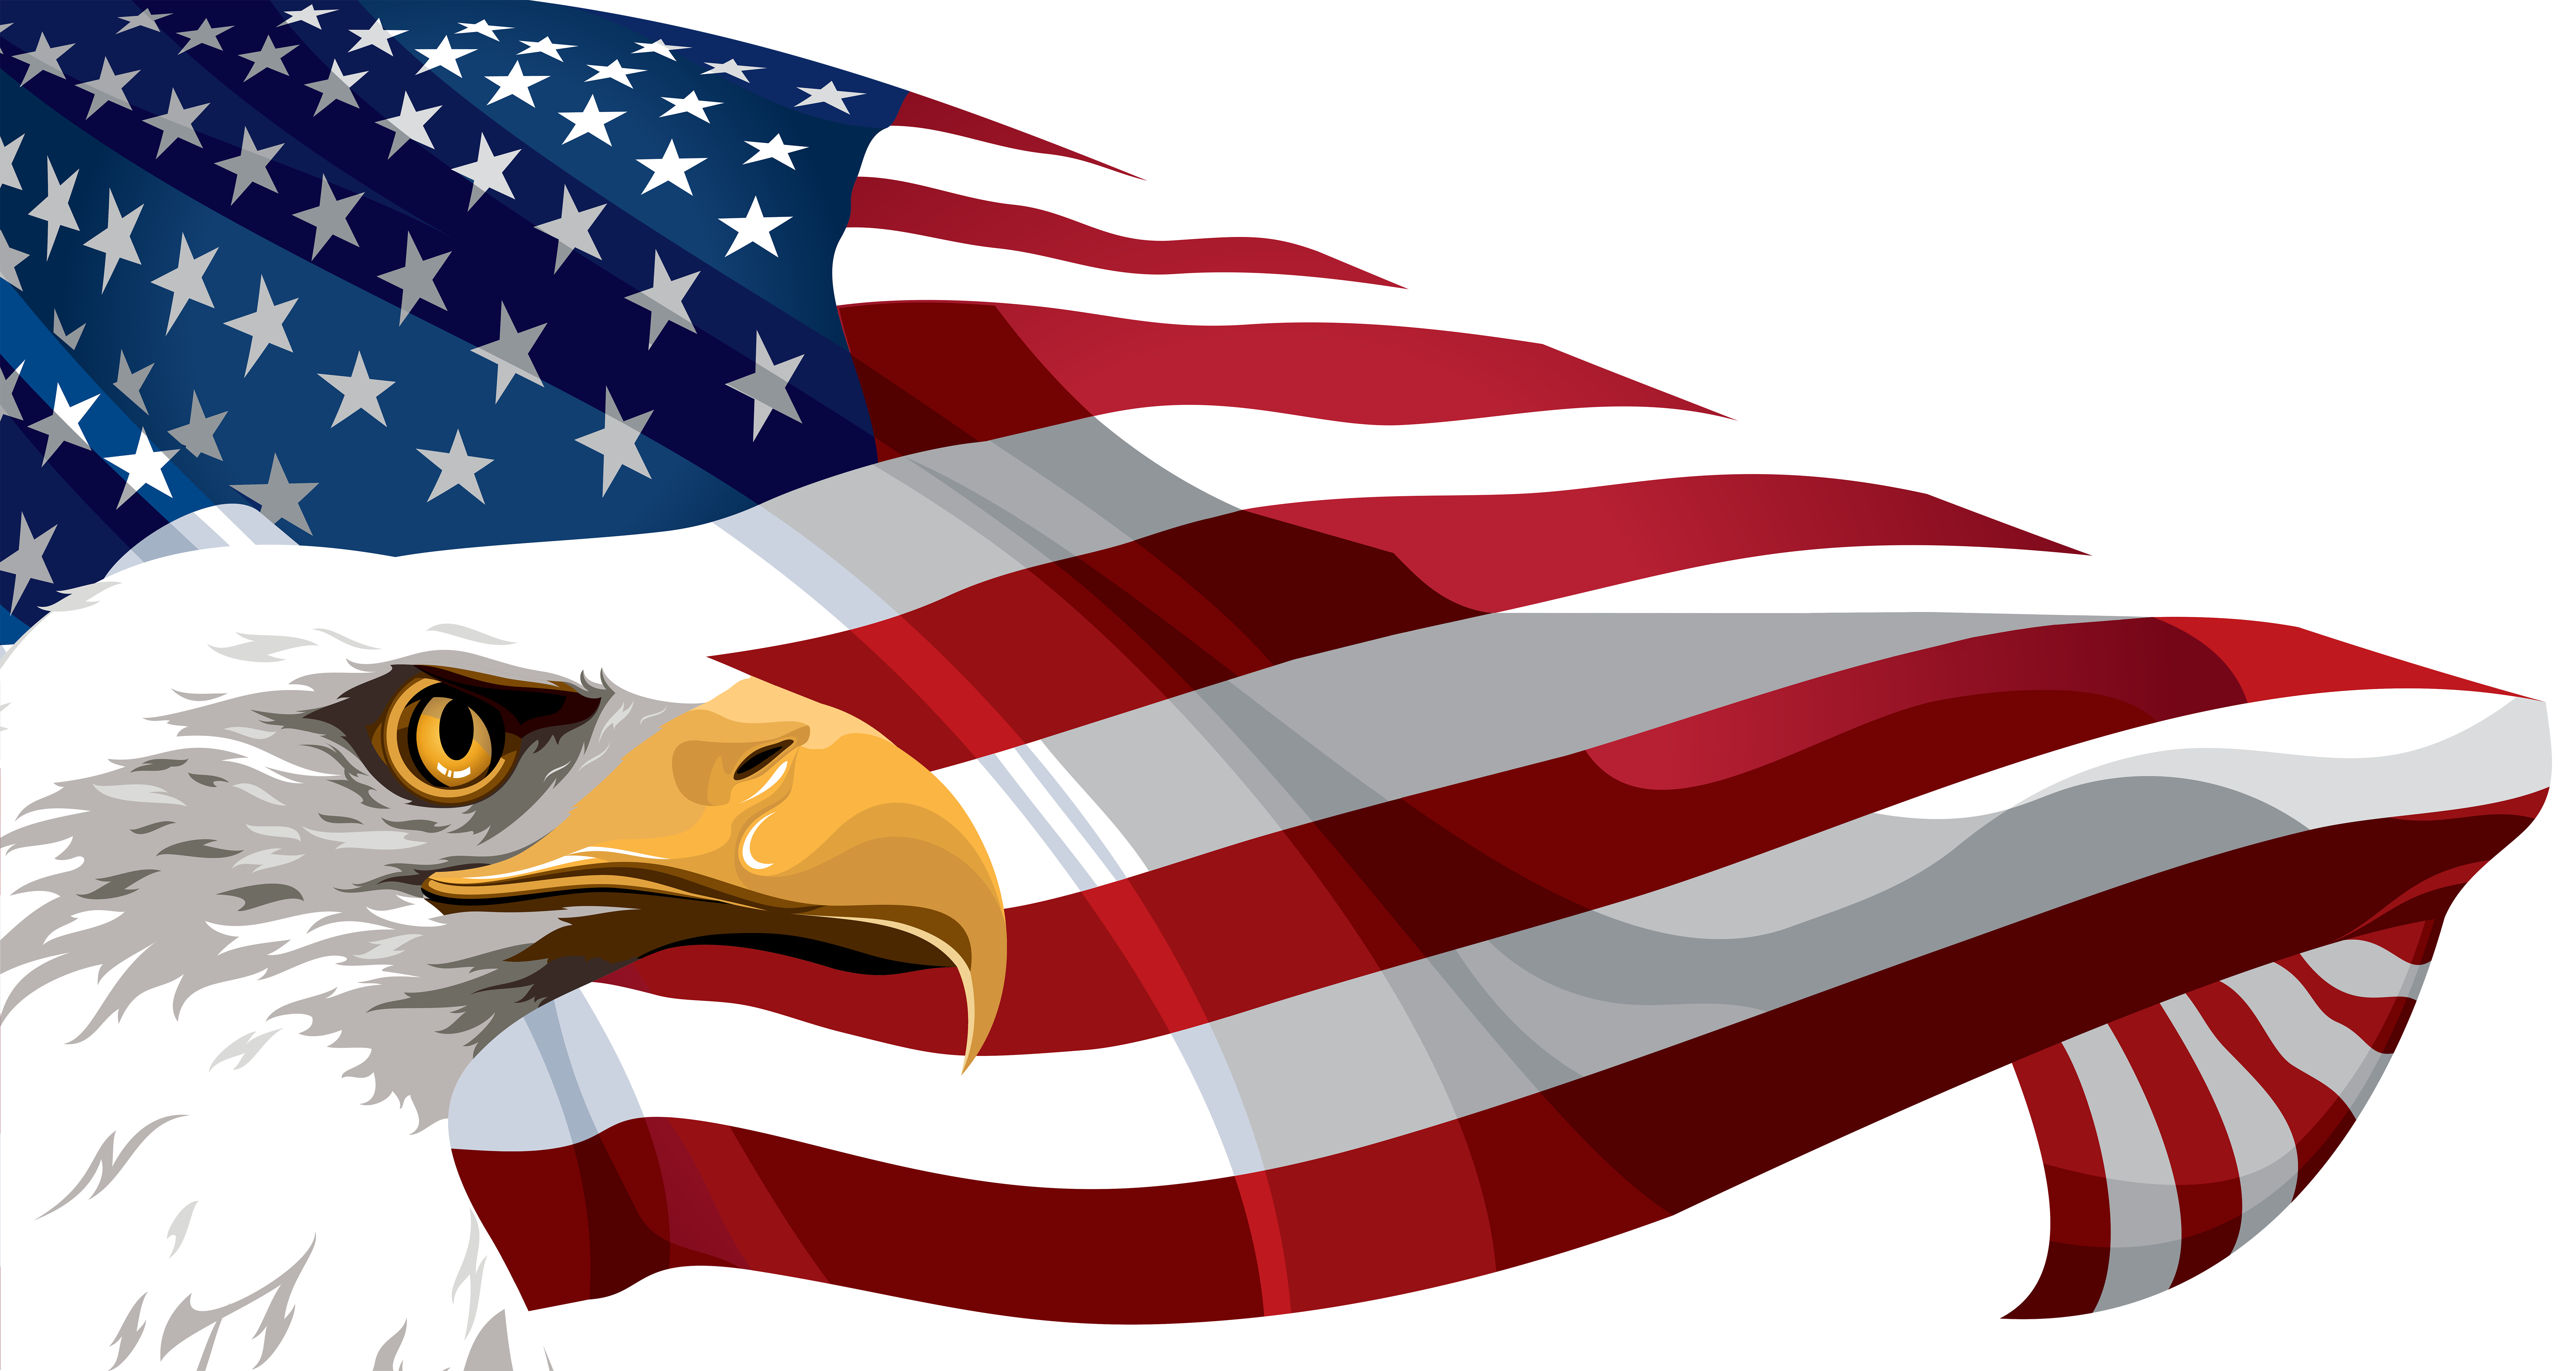 clip art free download Banners clipart eagle. American flag and transparent.